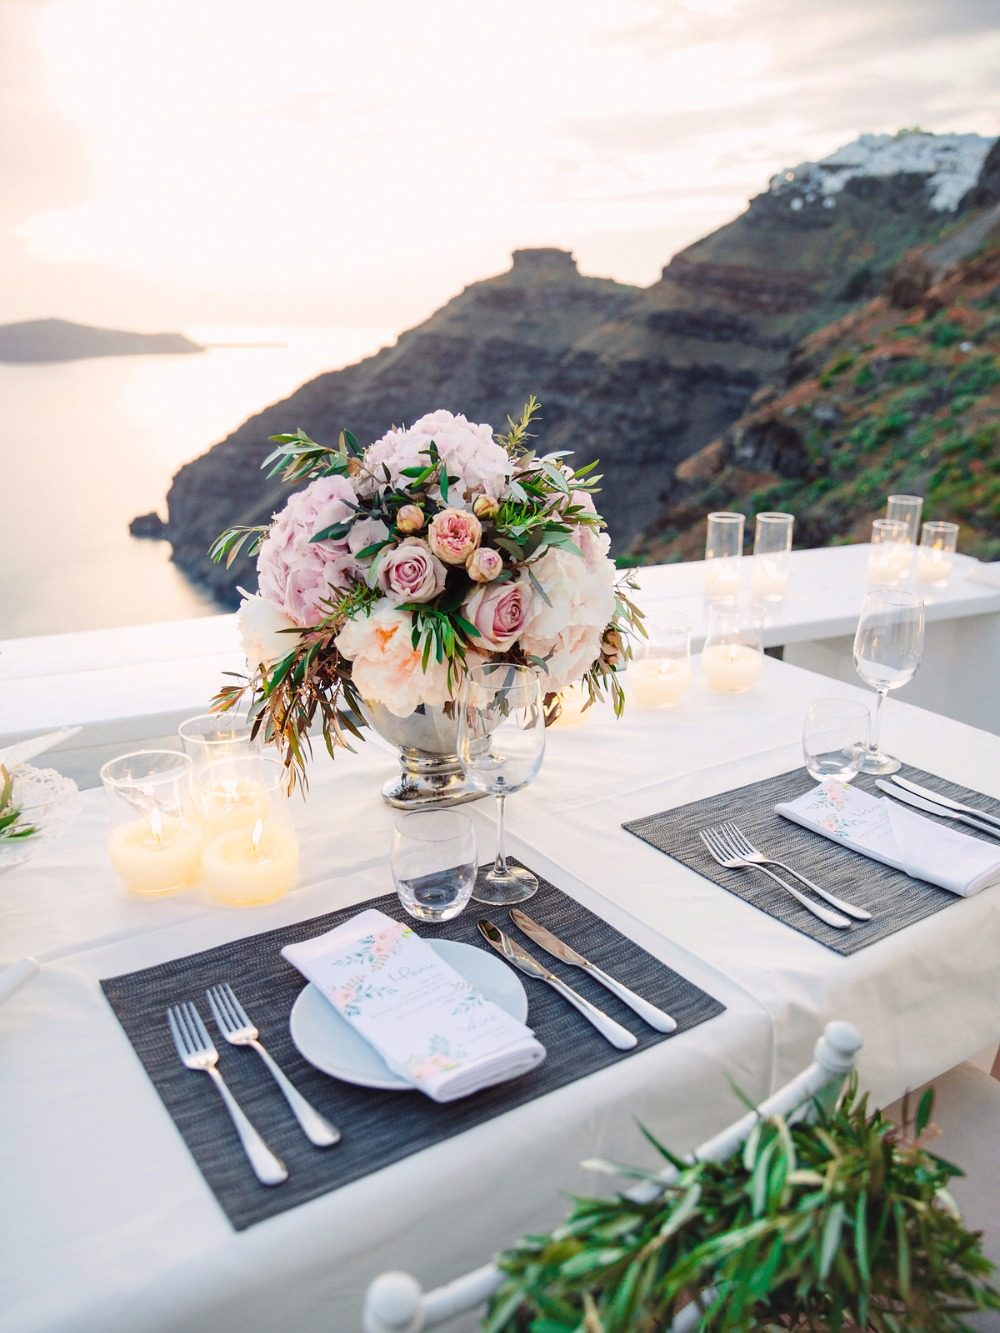 Sweetheart table for two with a view